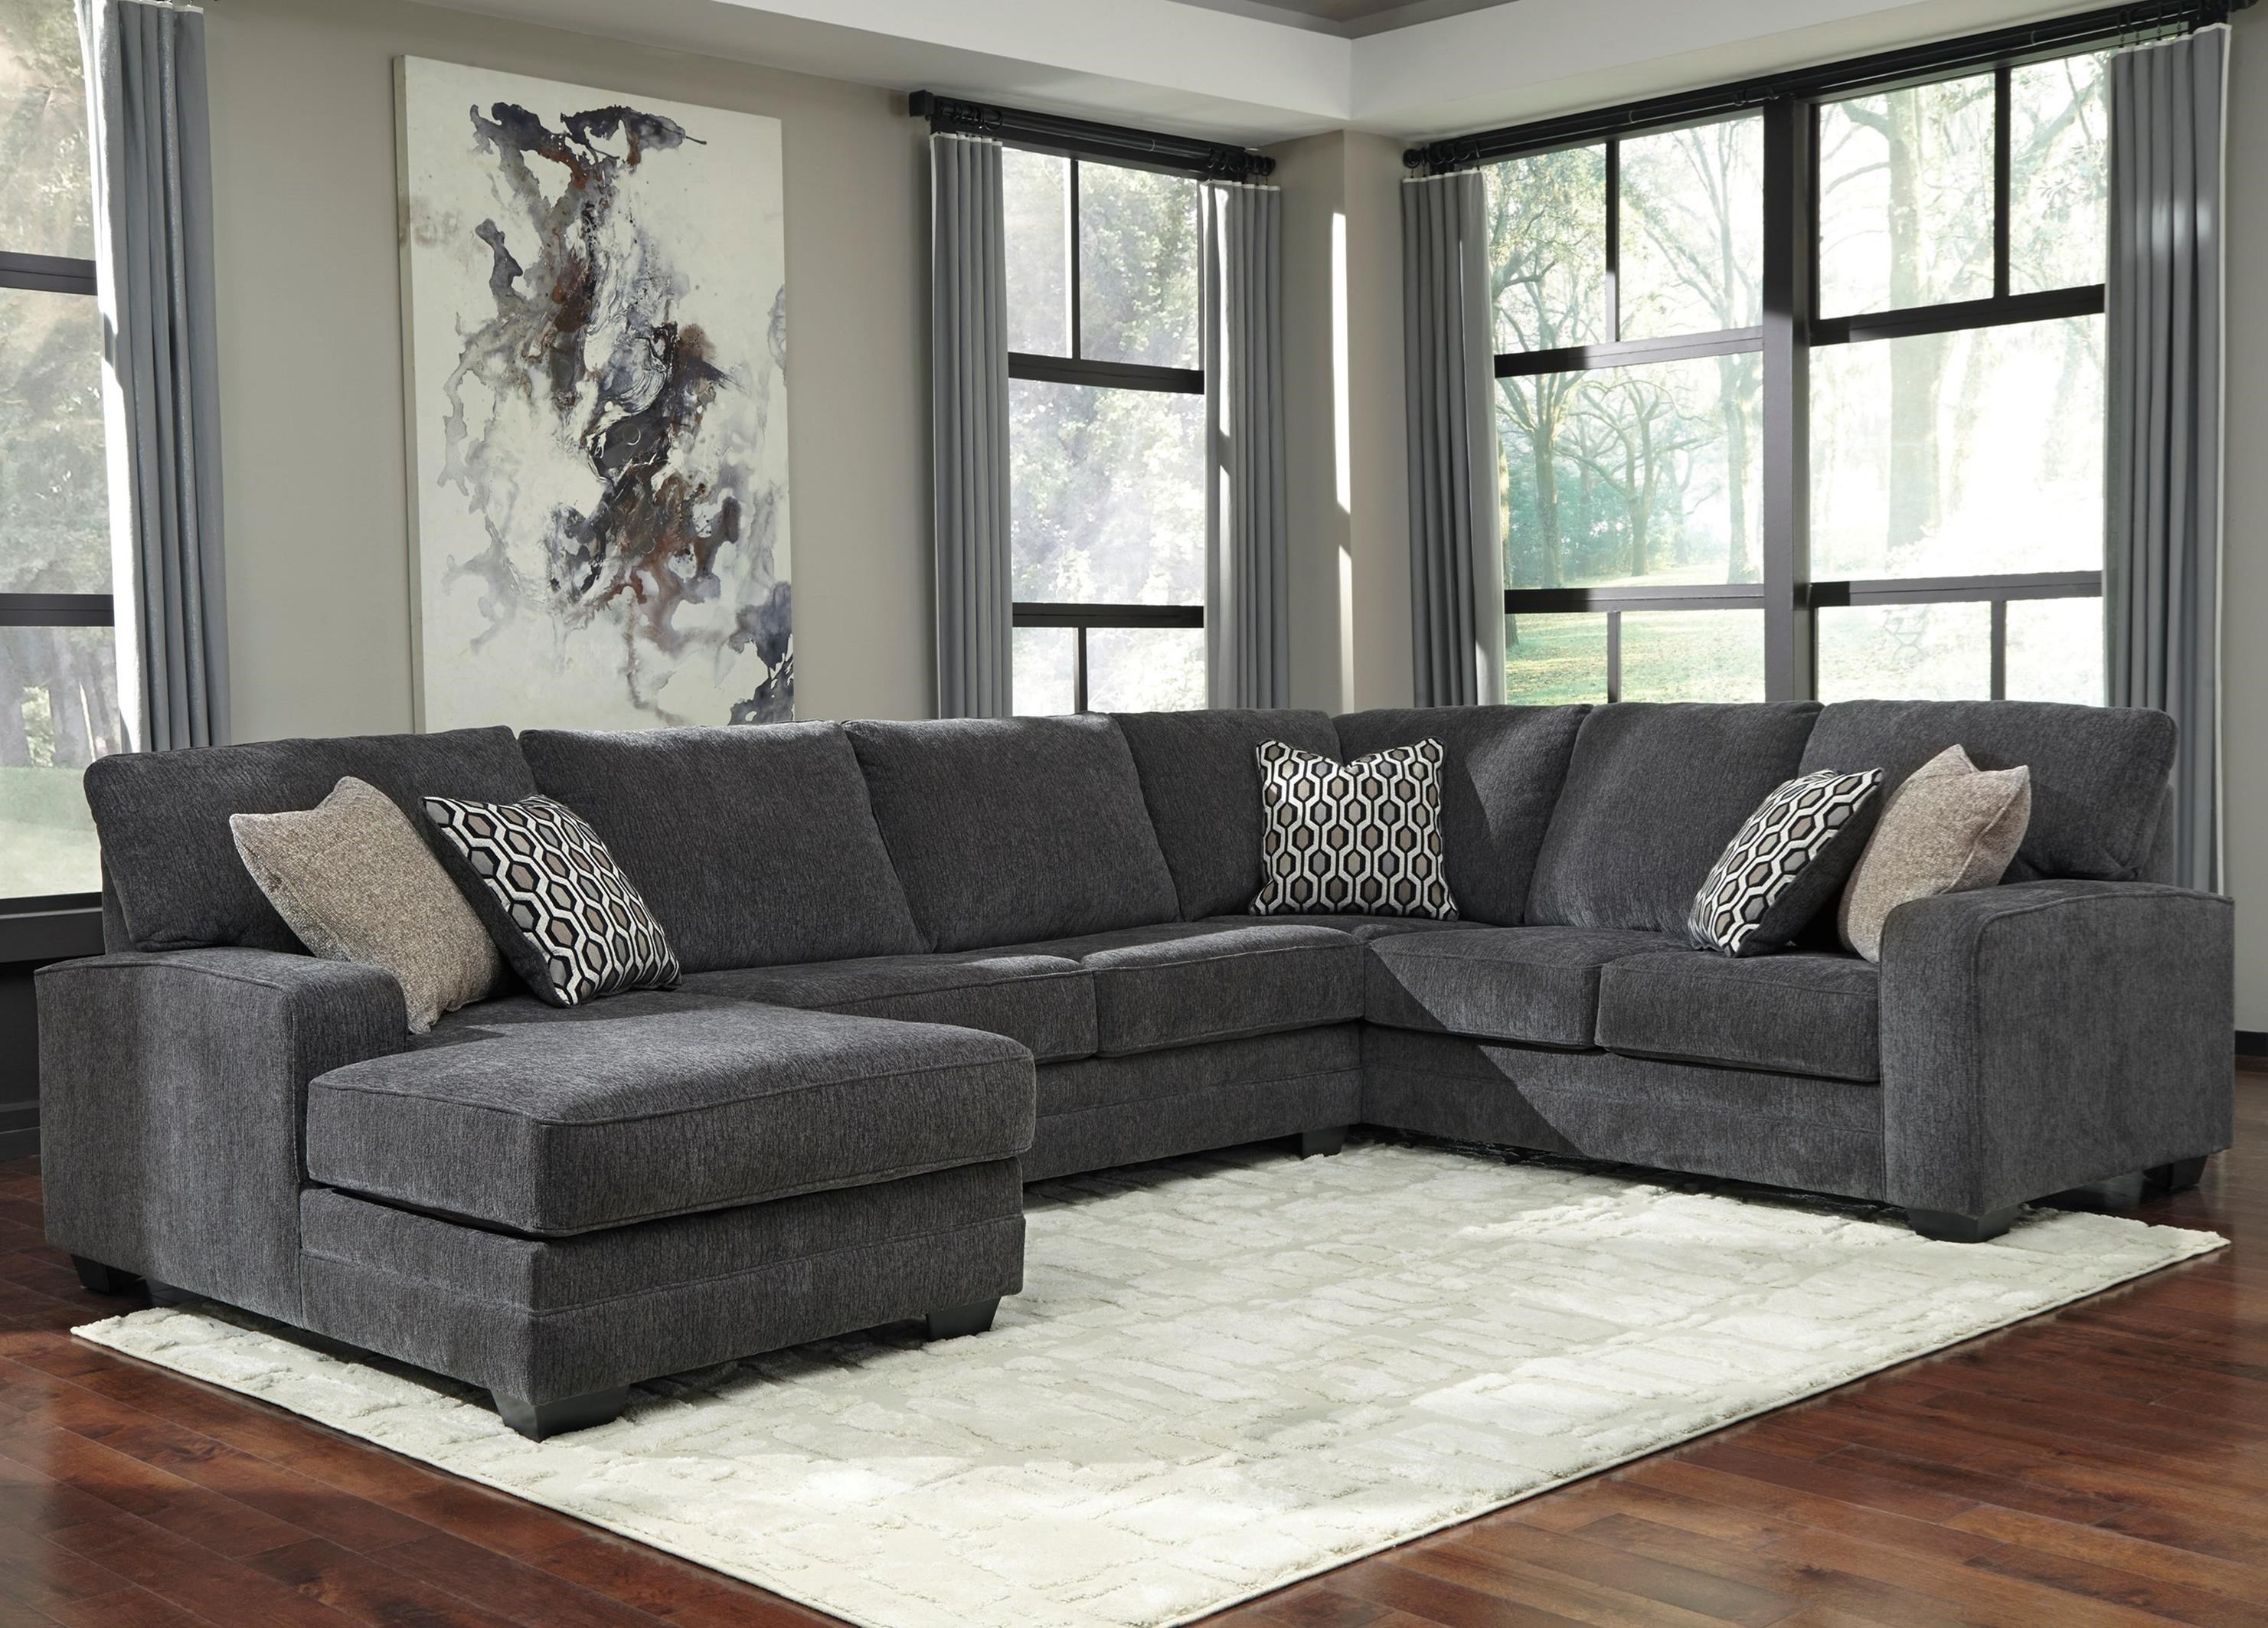 sofa deals nj outdoor wicker cushion set benchcraft tracling contemporary sectional with left